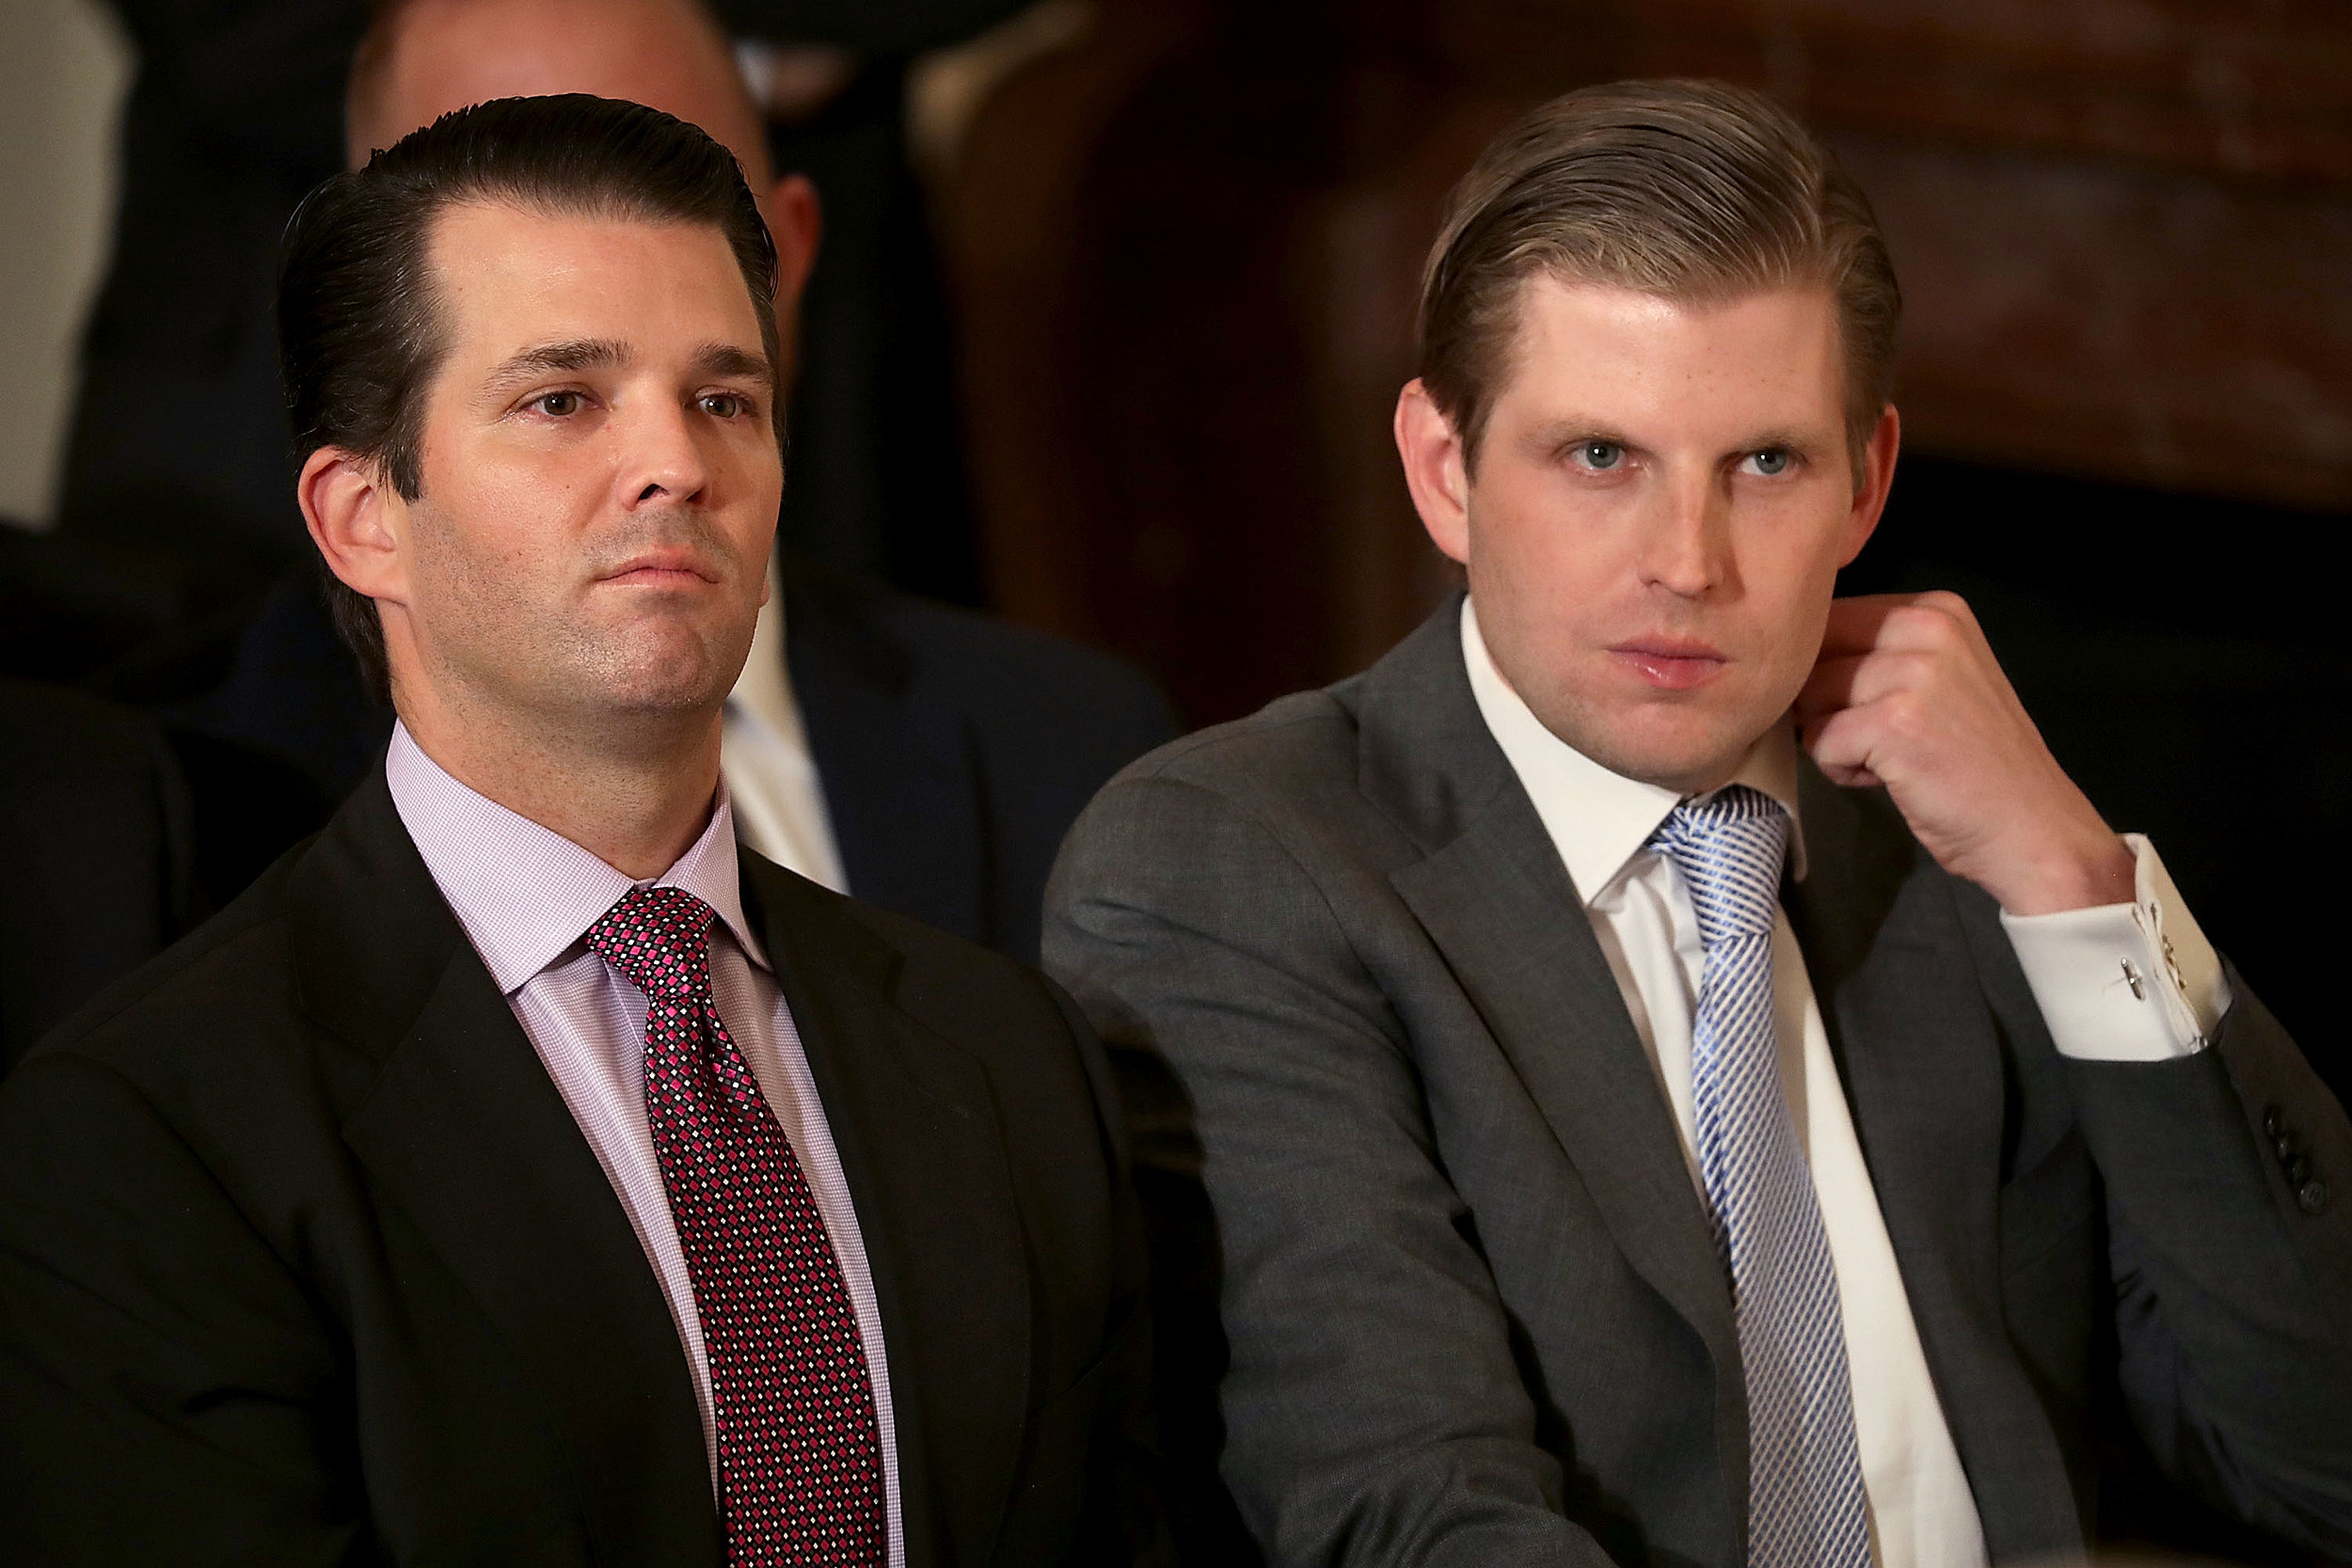 8th Person Identified at Trump Son's Russia Meeting